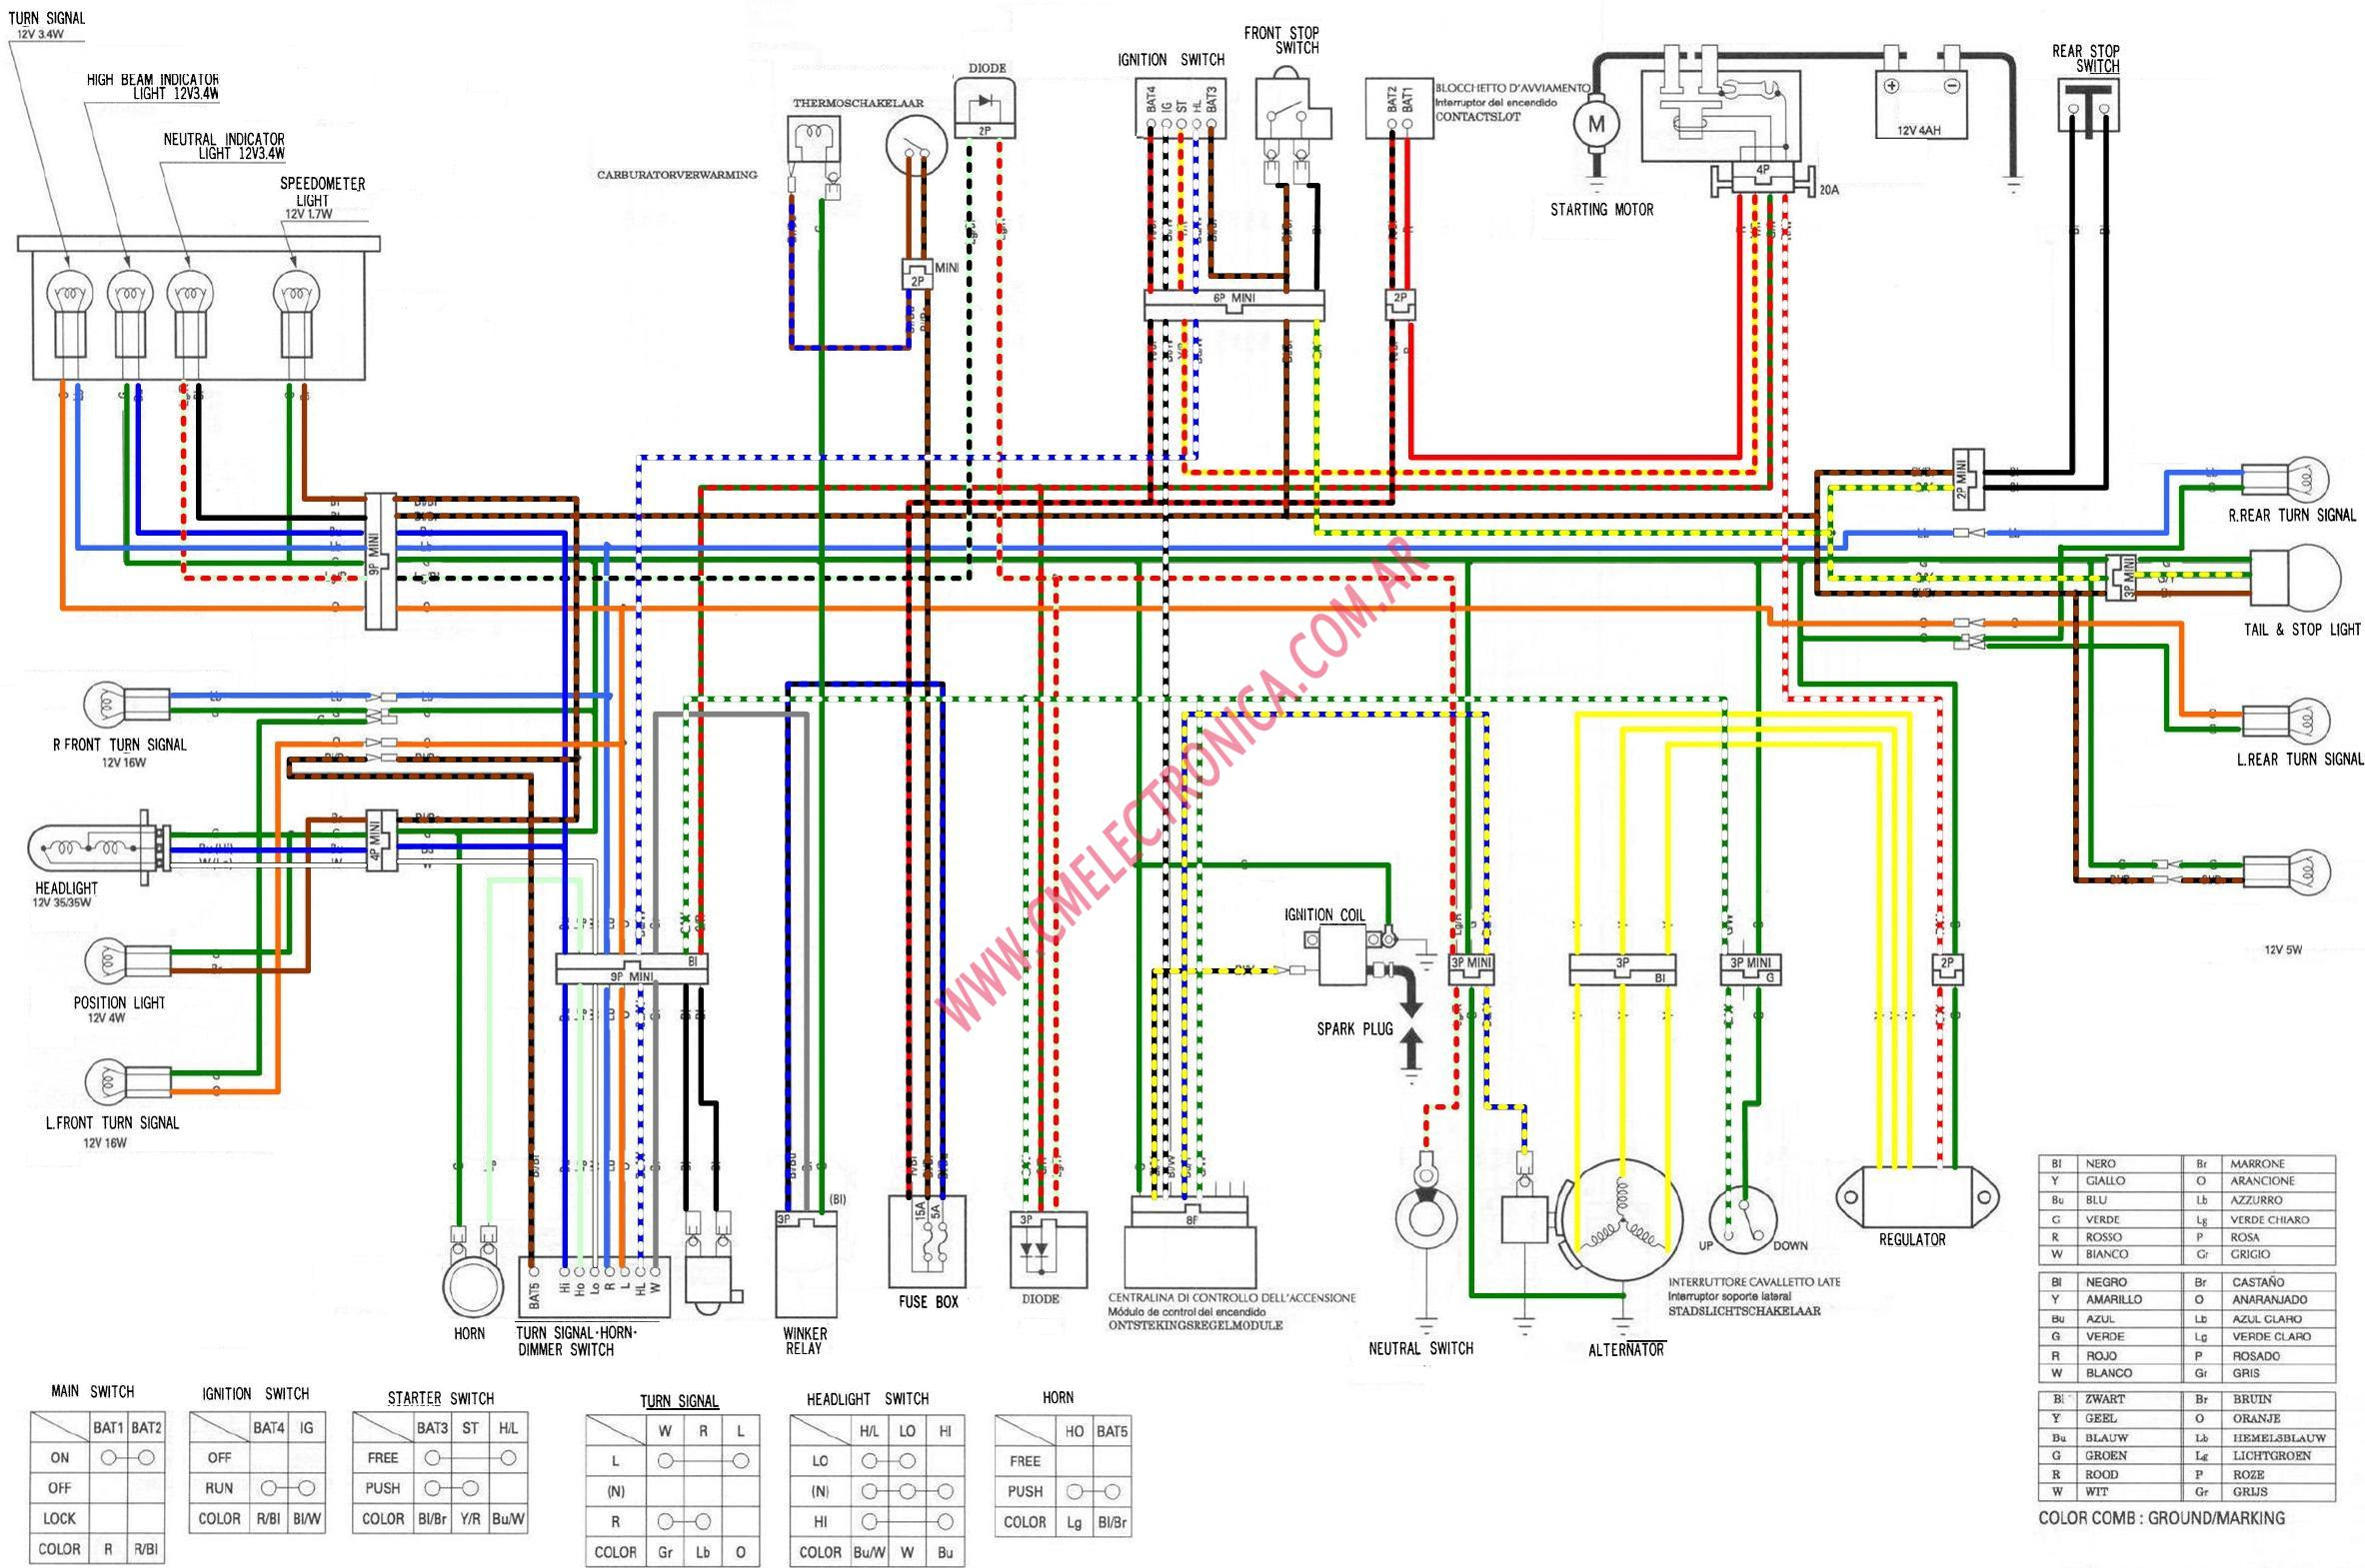 W3500 Tiltmaster Wiring Diagram FULL HD Version Wiring Diagram - LOUV- DIAGRAM.JAMAISVU-JV.ITDiagram Database And Images